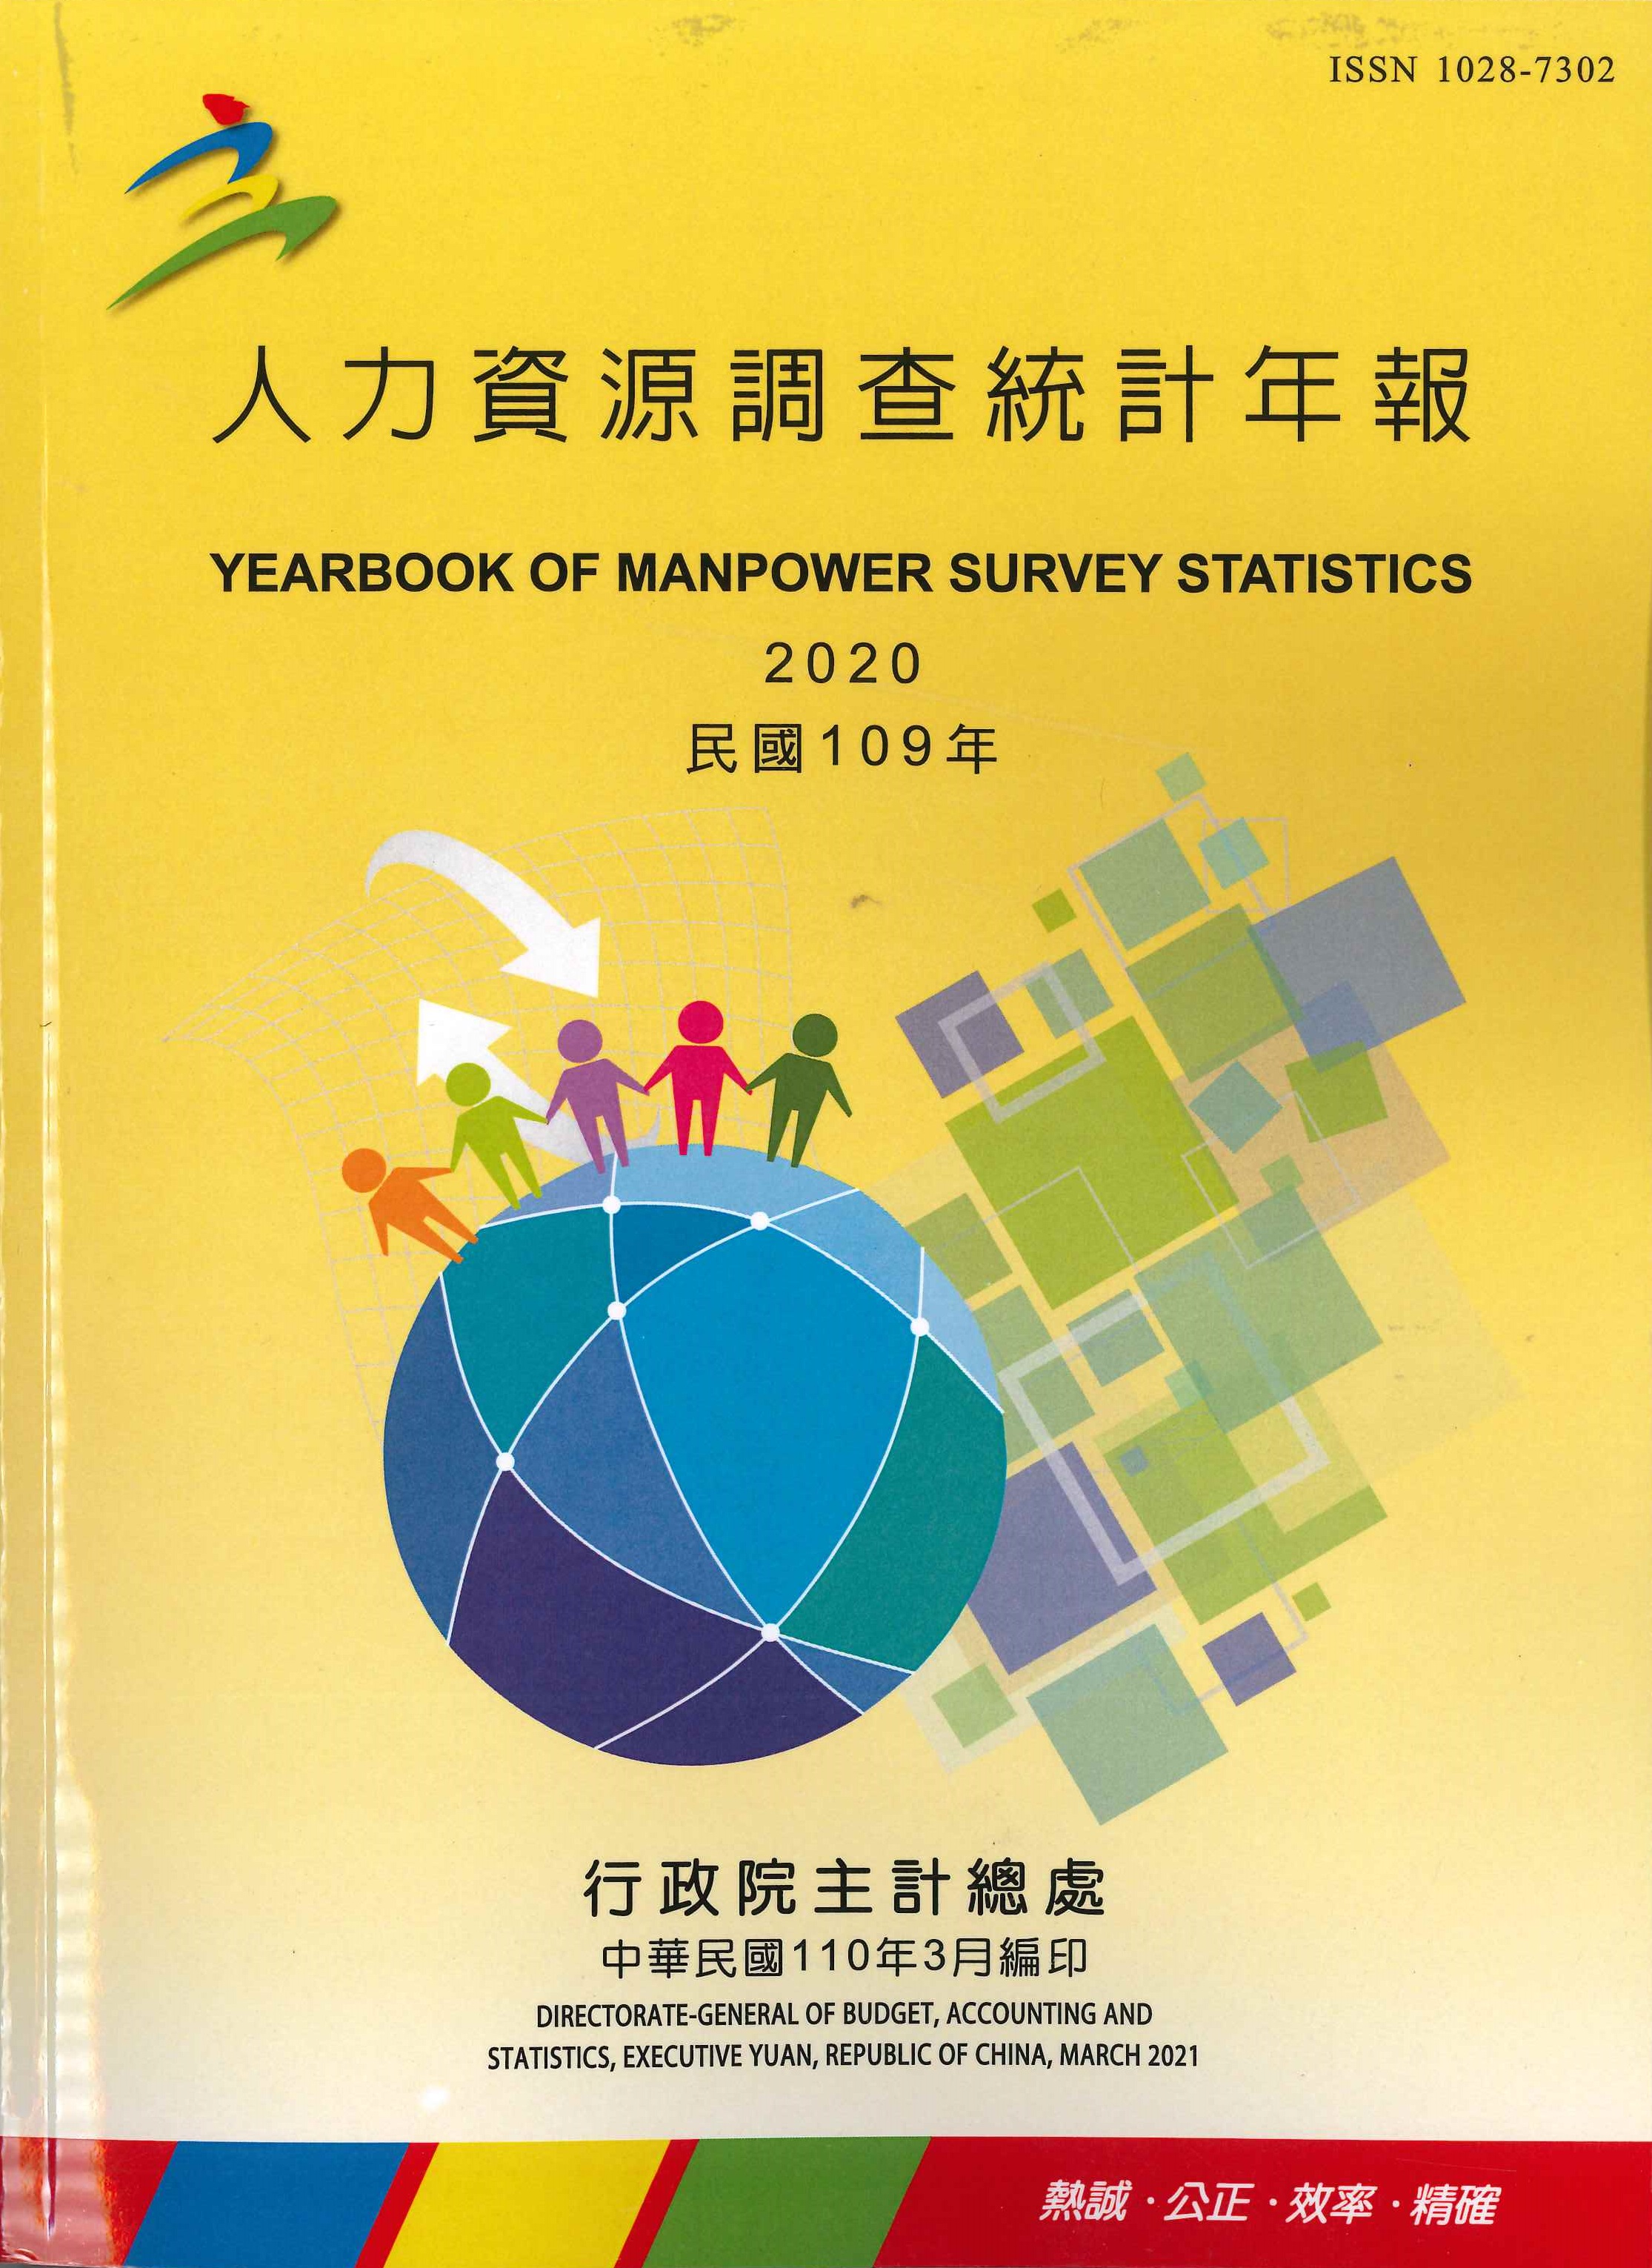 人力資源調查統計年報=Yearbook of manpower survey statistics